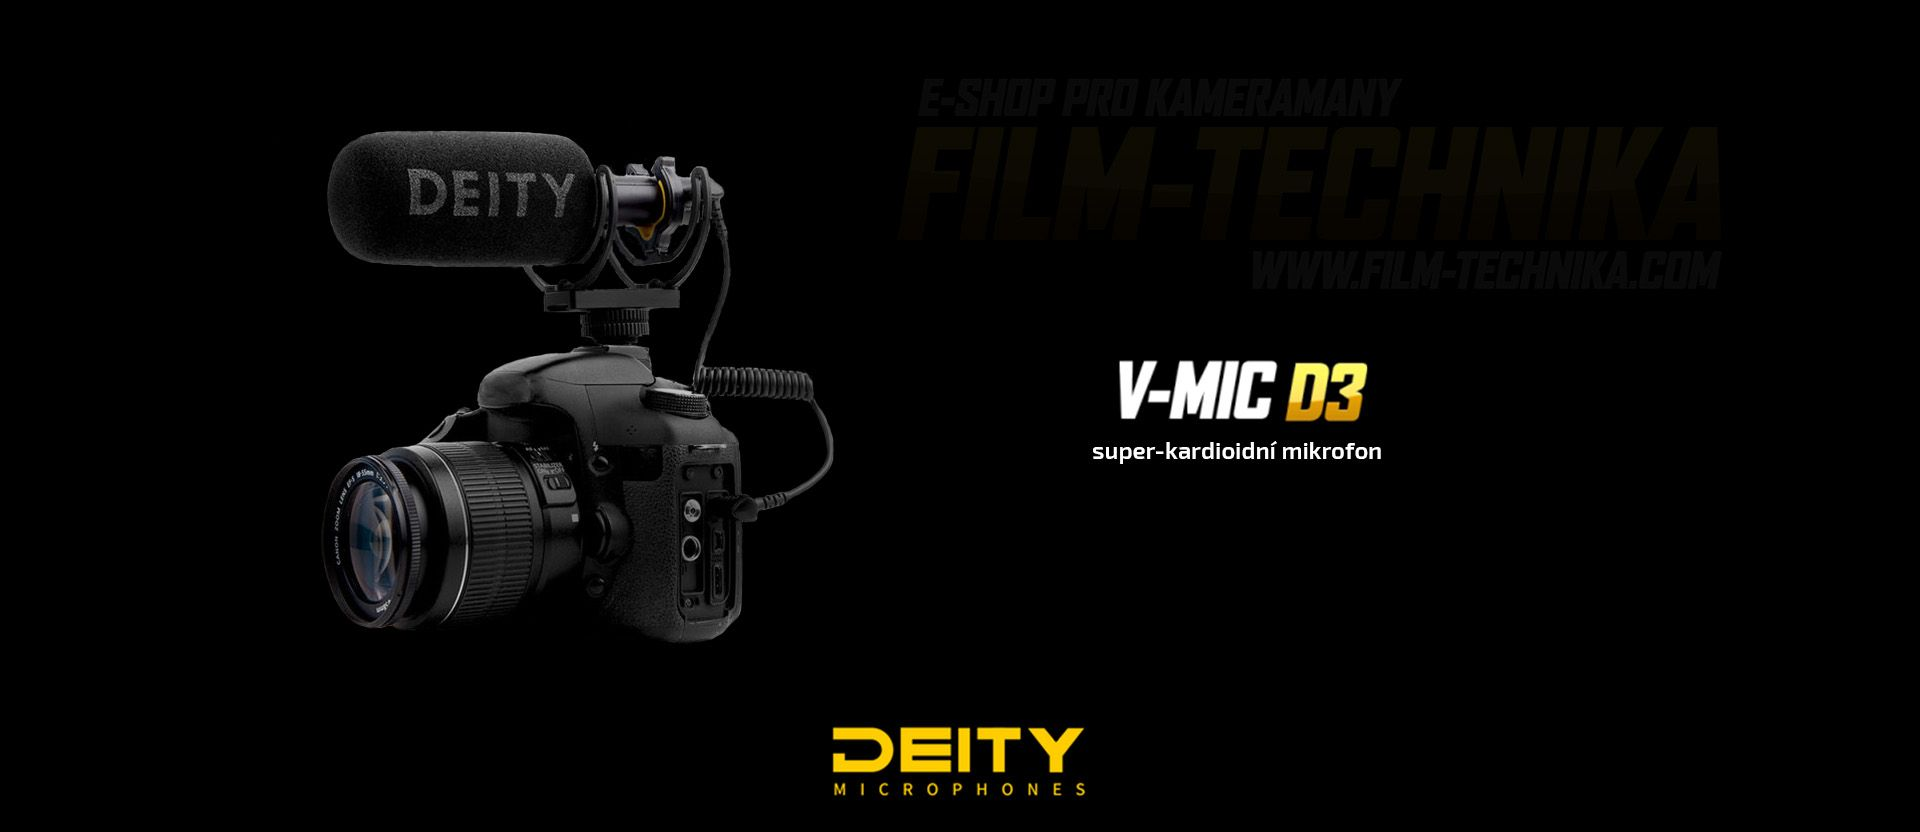 film-technika-deity-vmic-d3-intext1